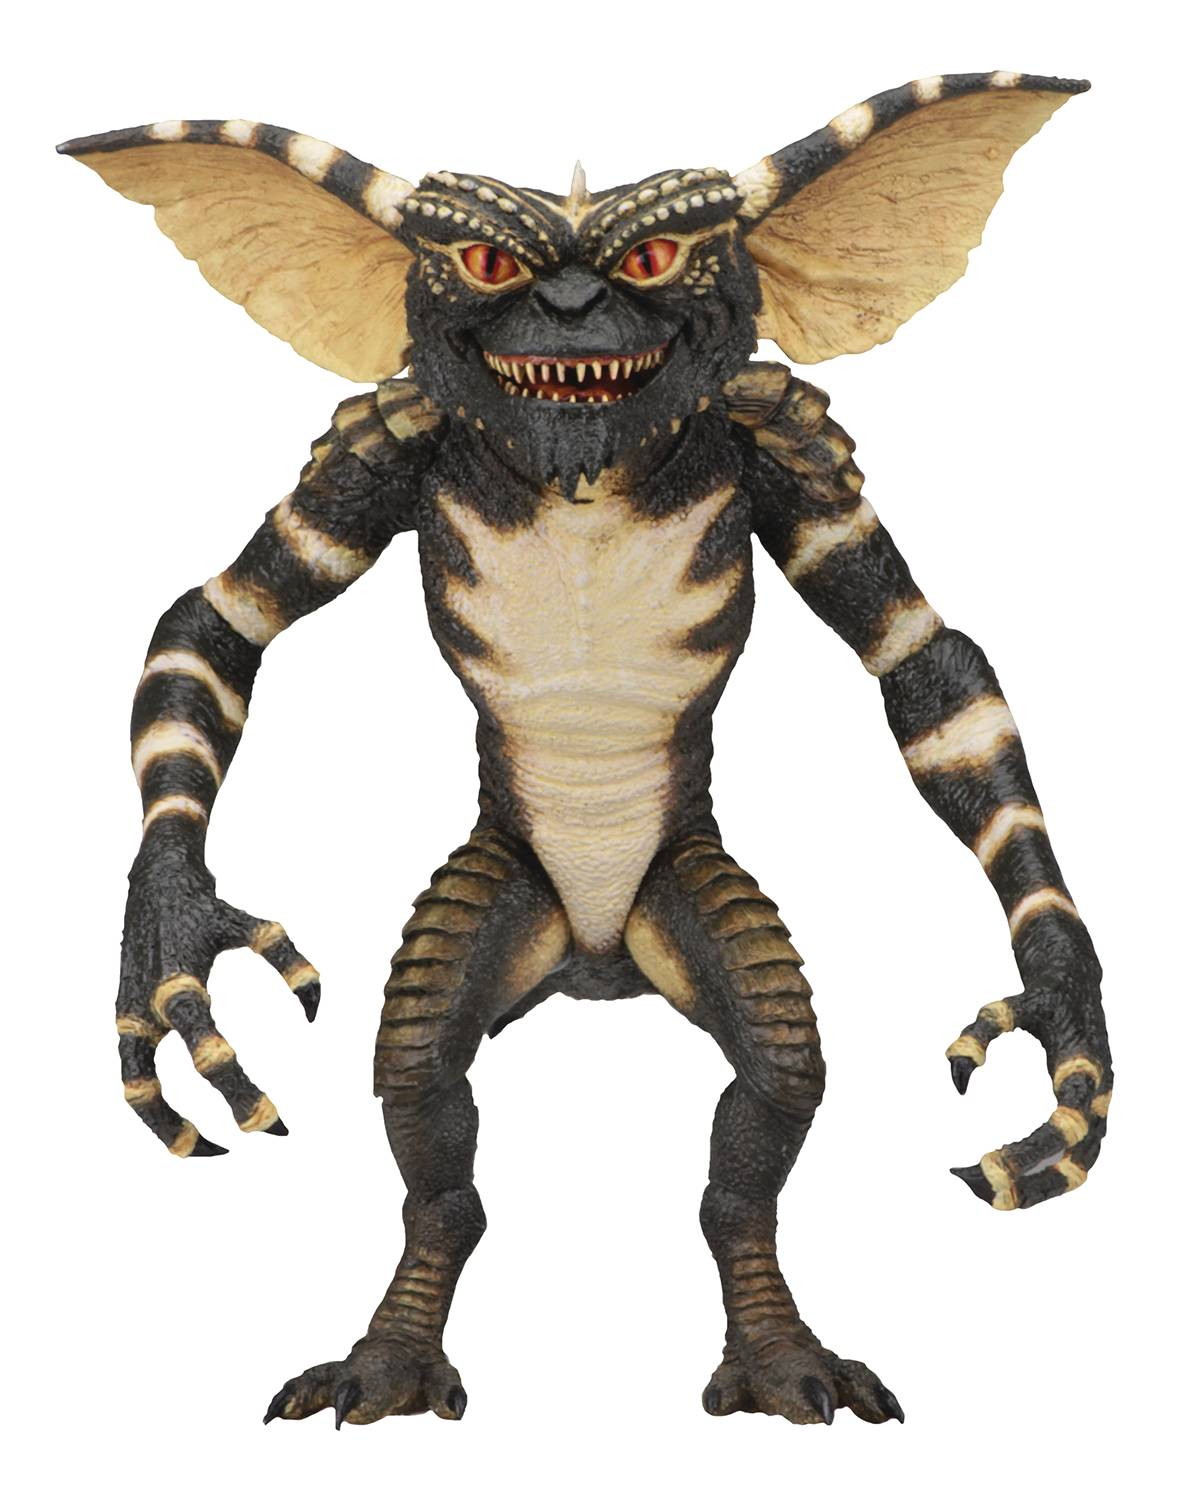 Gremlins Ultimate Gremlin 7-Inch PVC Action Figure